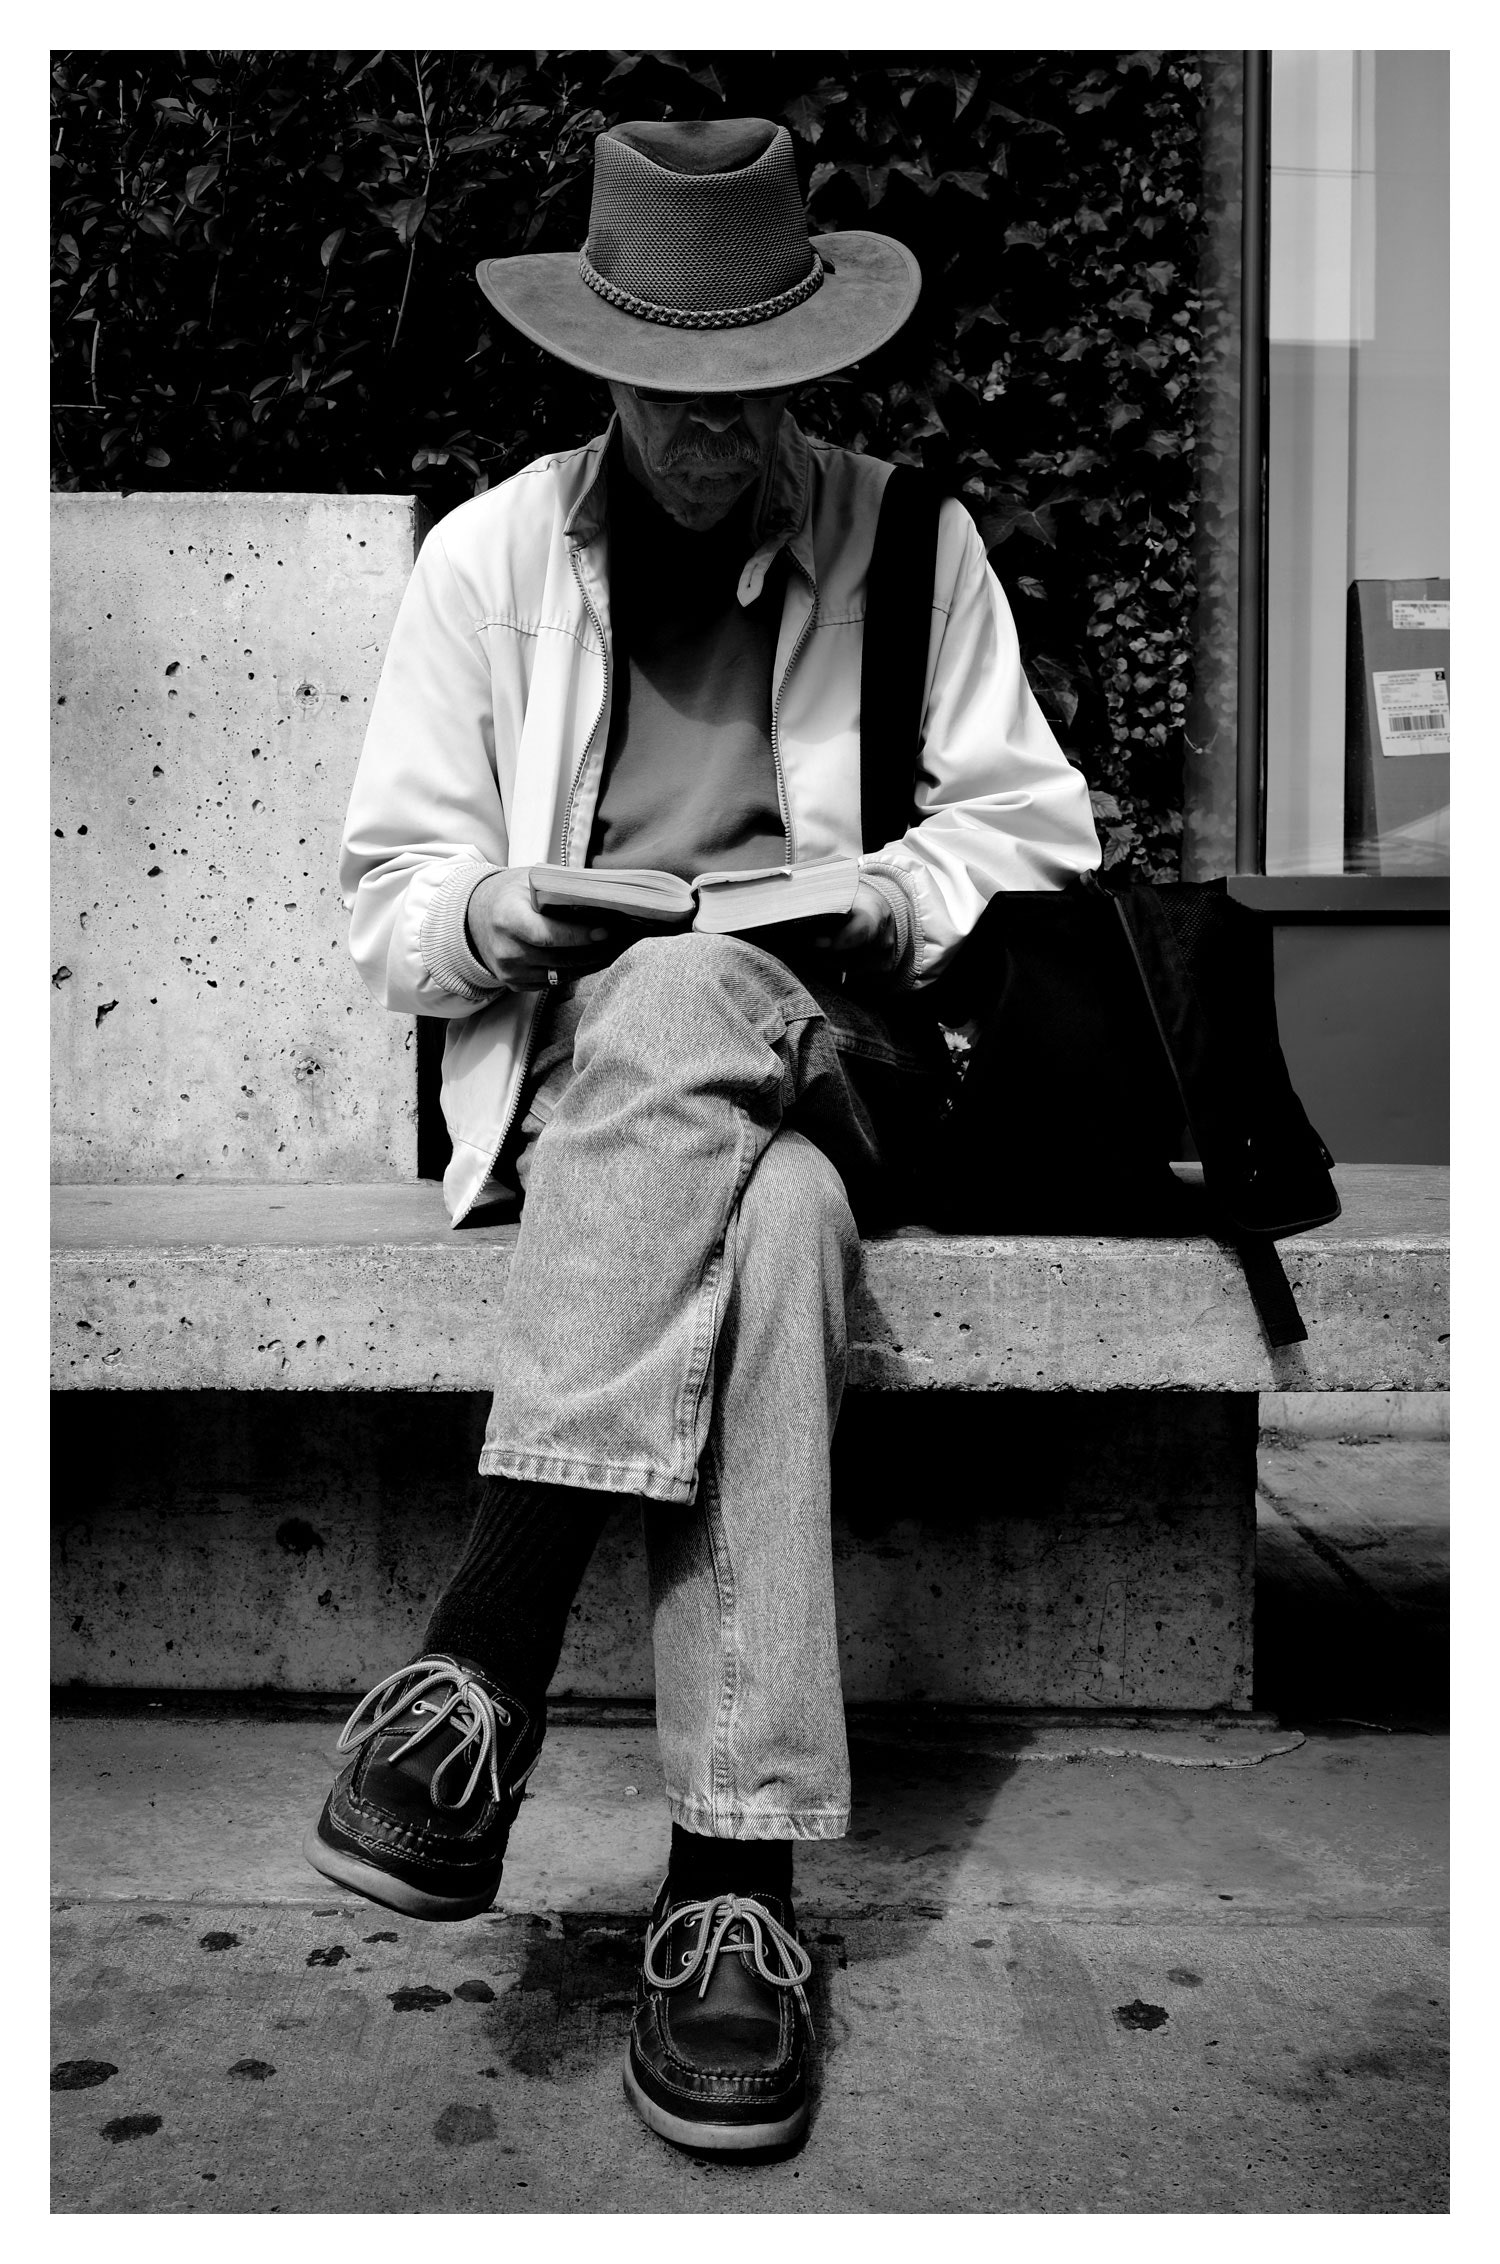 I stood next to this gentleman with my camera held casually at my side, and snapped this shot with the Remote App